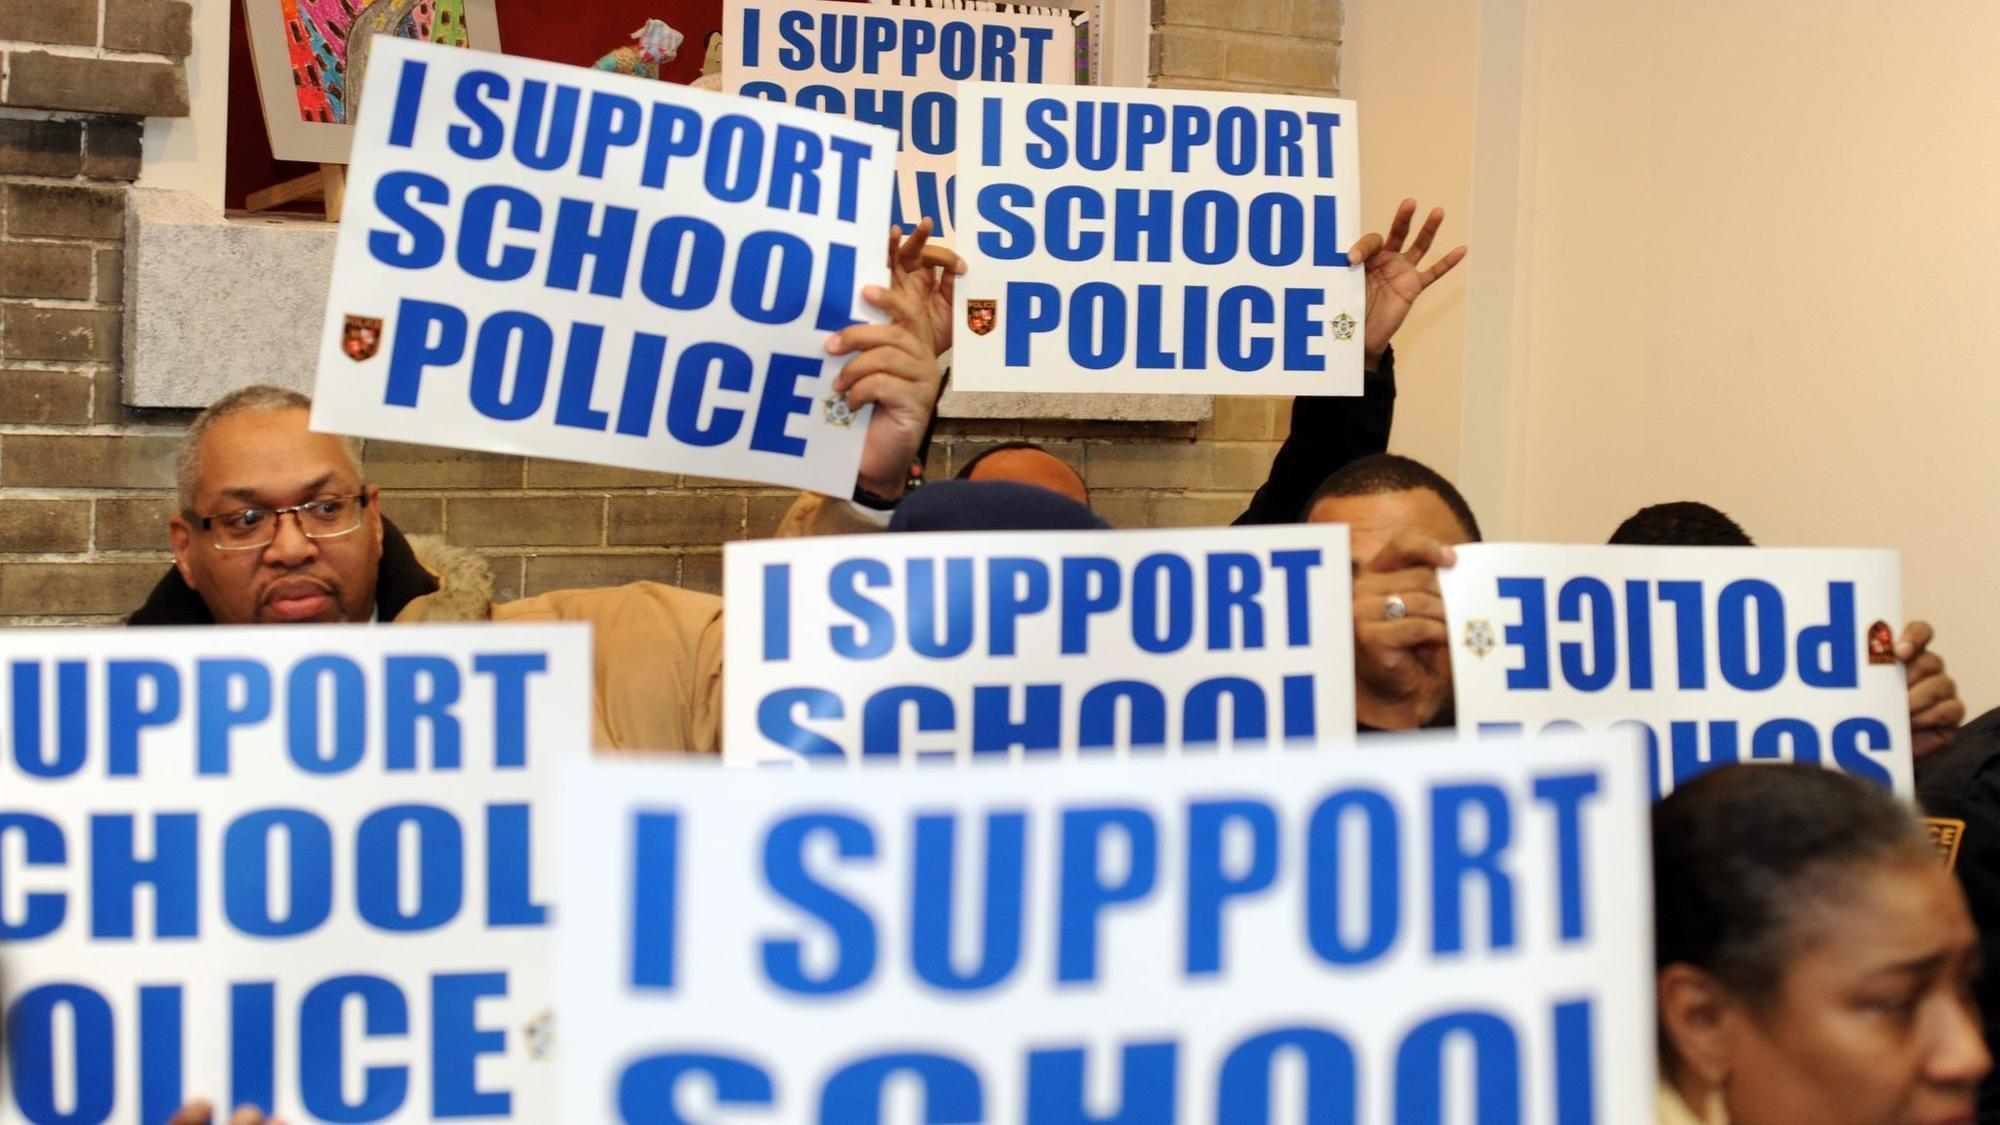 Baltimore City school board revives the question: Should school police officers be armed?